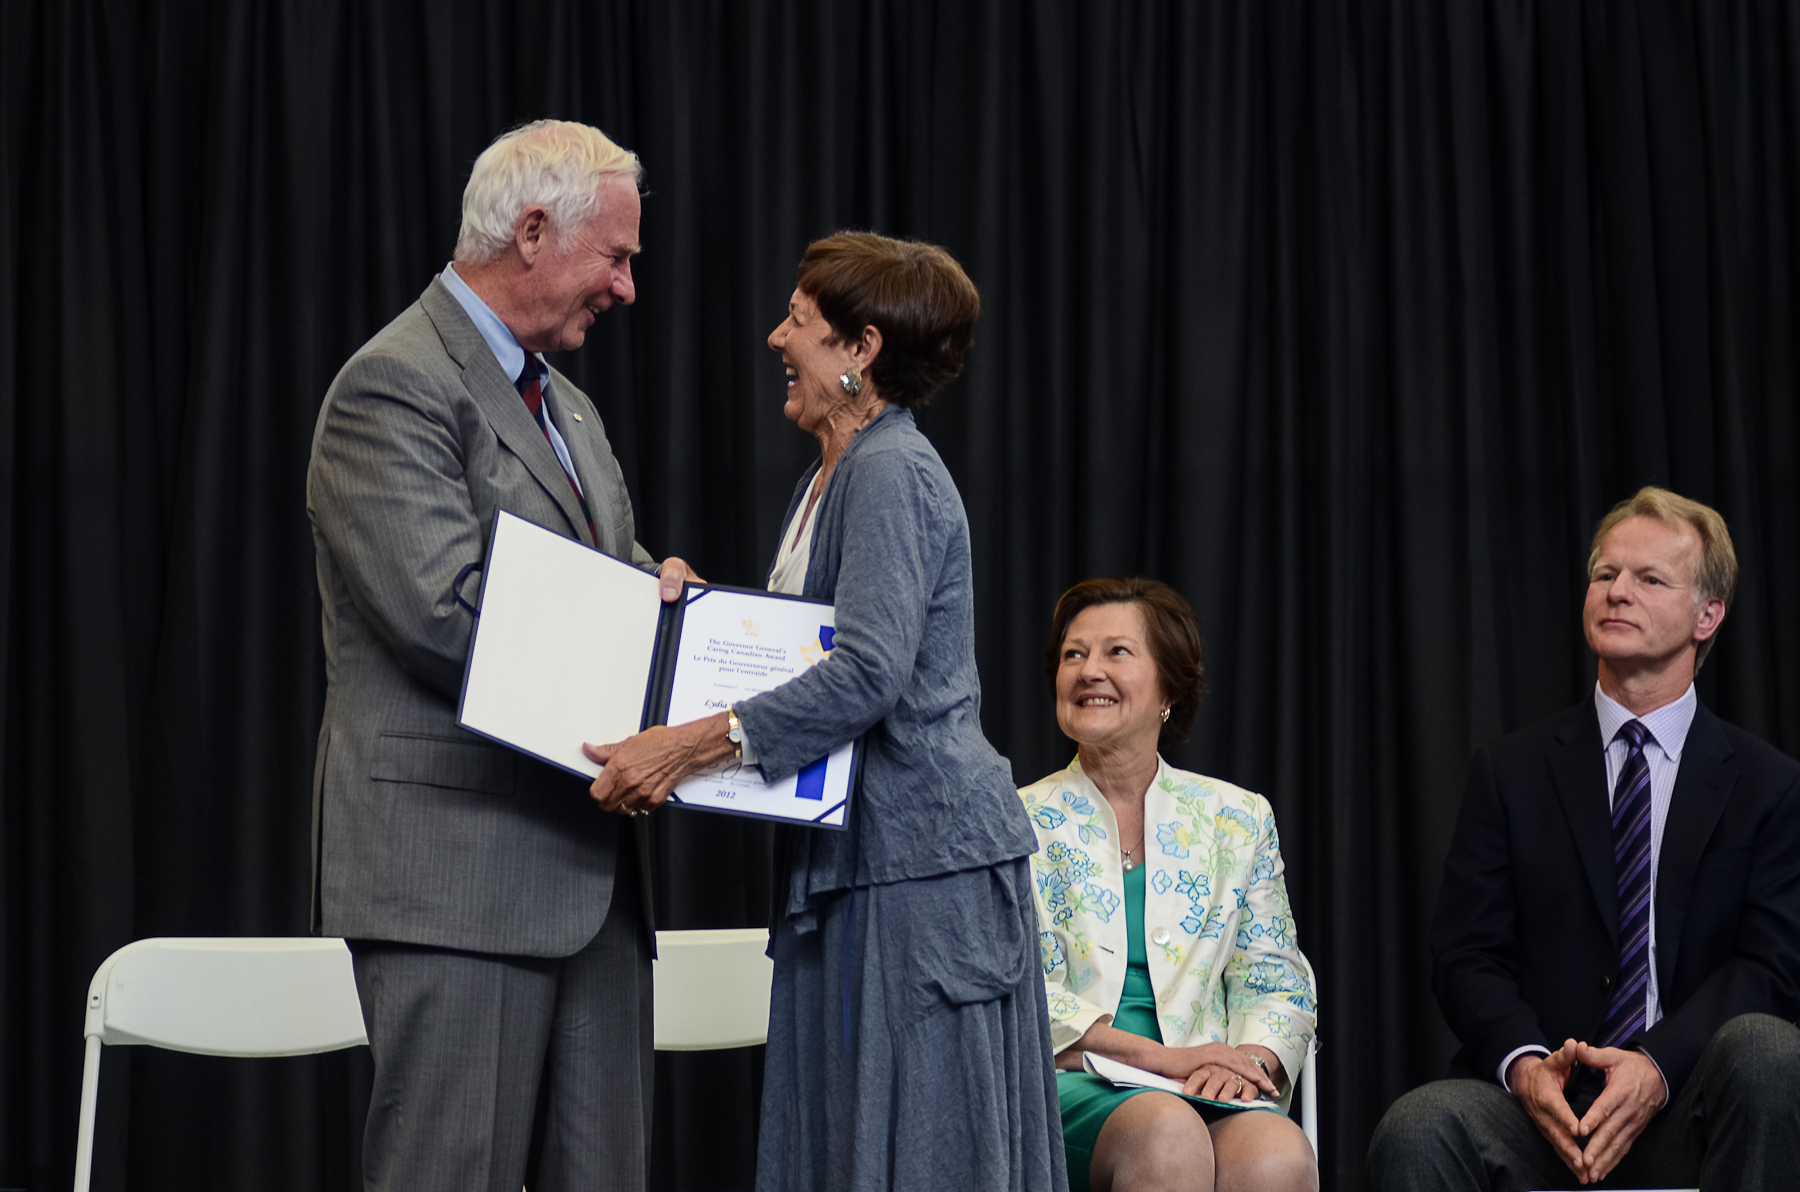 Lydia Kasianchuk, who includes volunteering as a community advisor  for the Victoria Foundation among her many volunteer roles, receives her Caring Canadian citation from His Excellency, The Right Honorable David Johnston. Sandra Richardson, CEO of the Victoria Foundation, is in the background